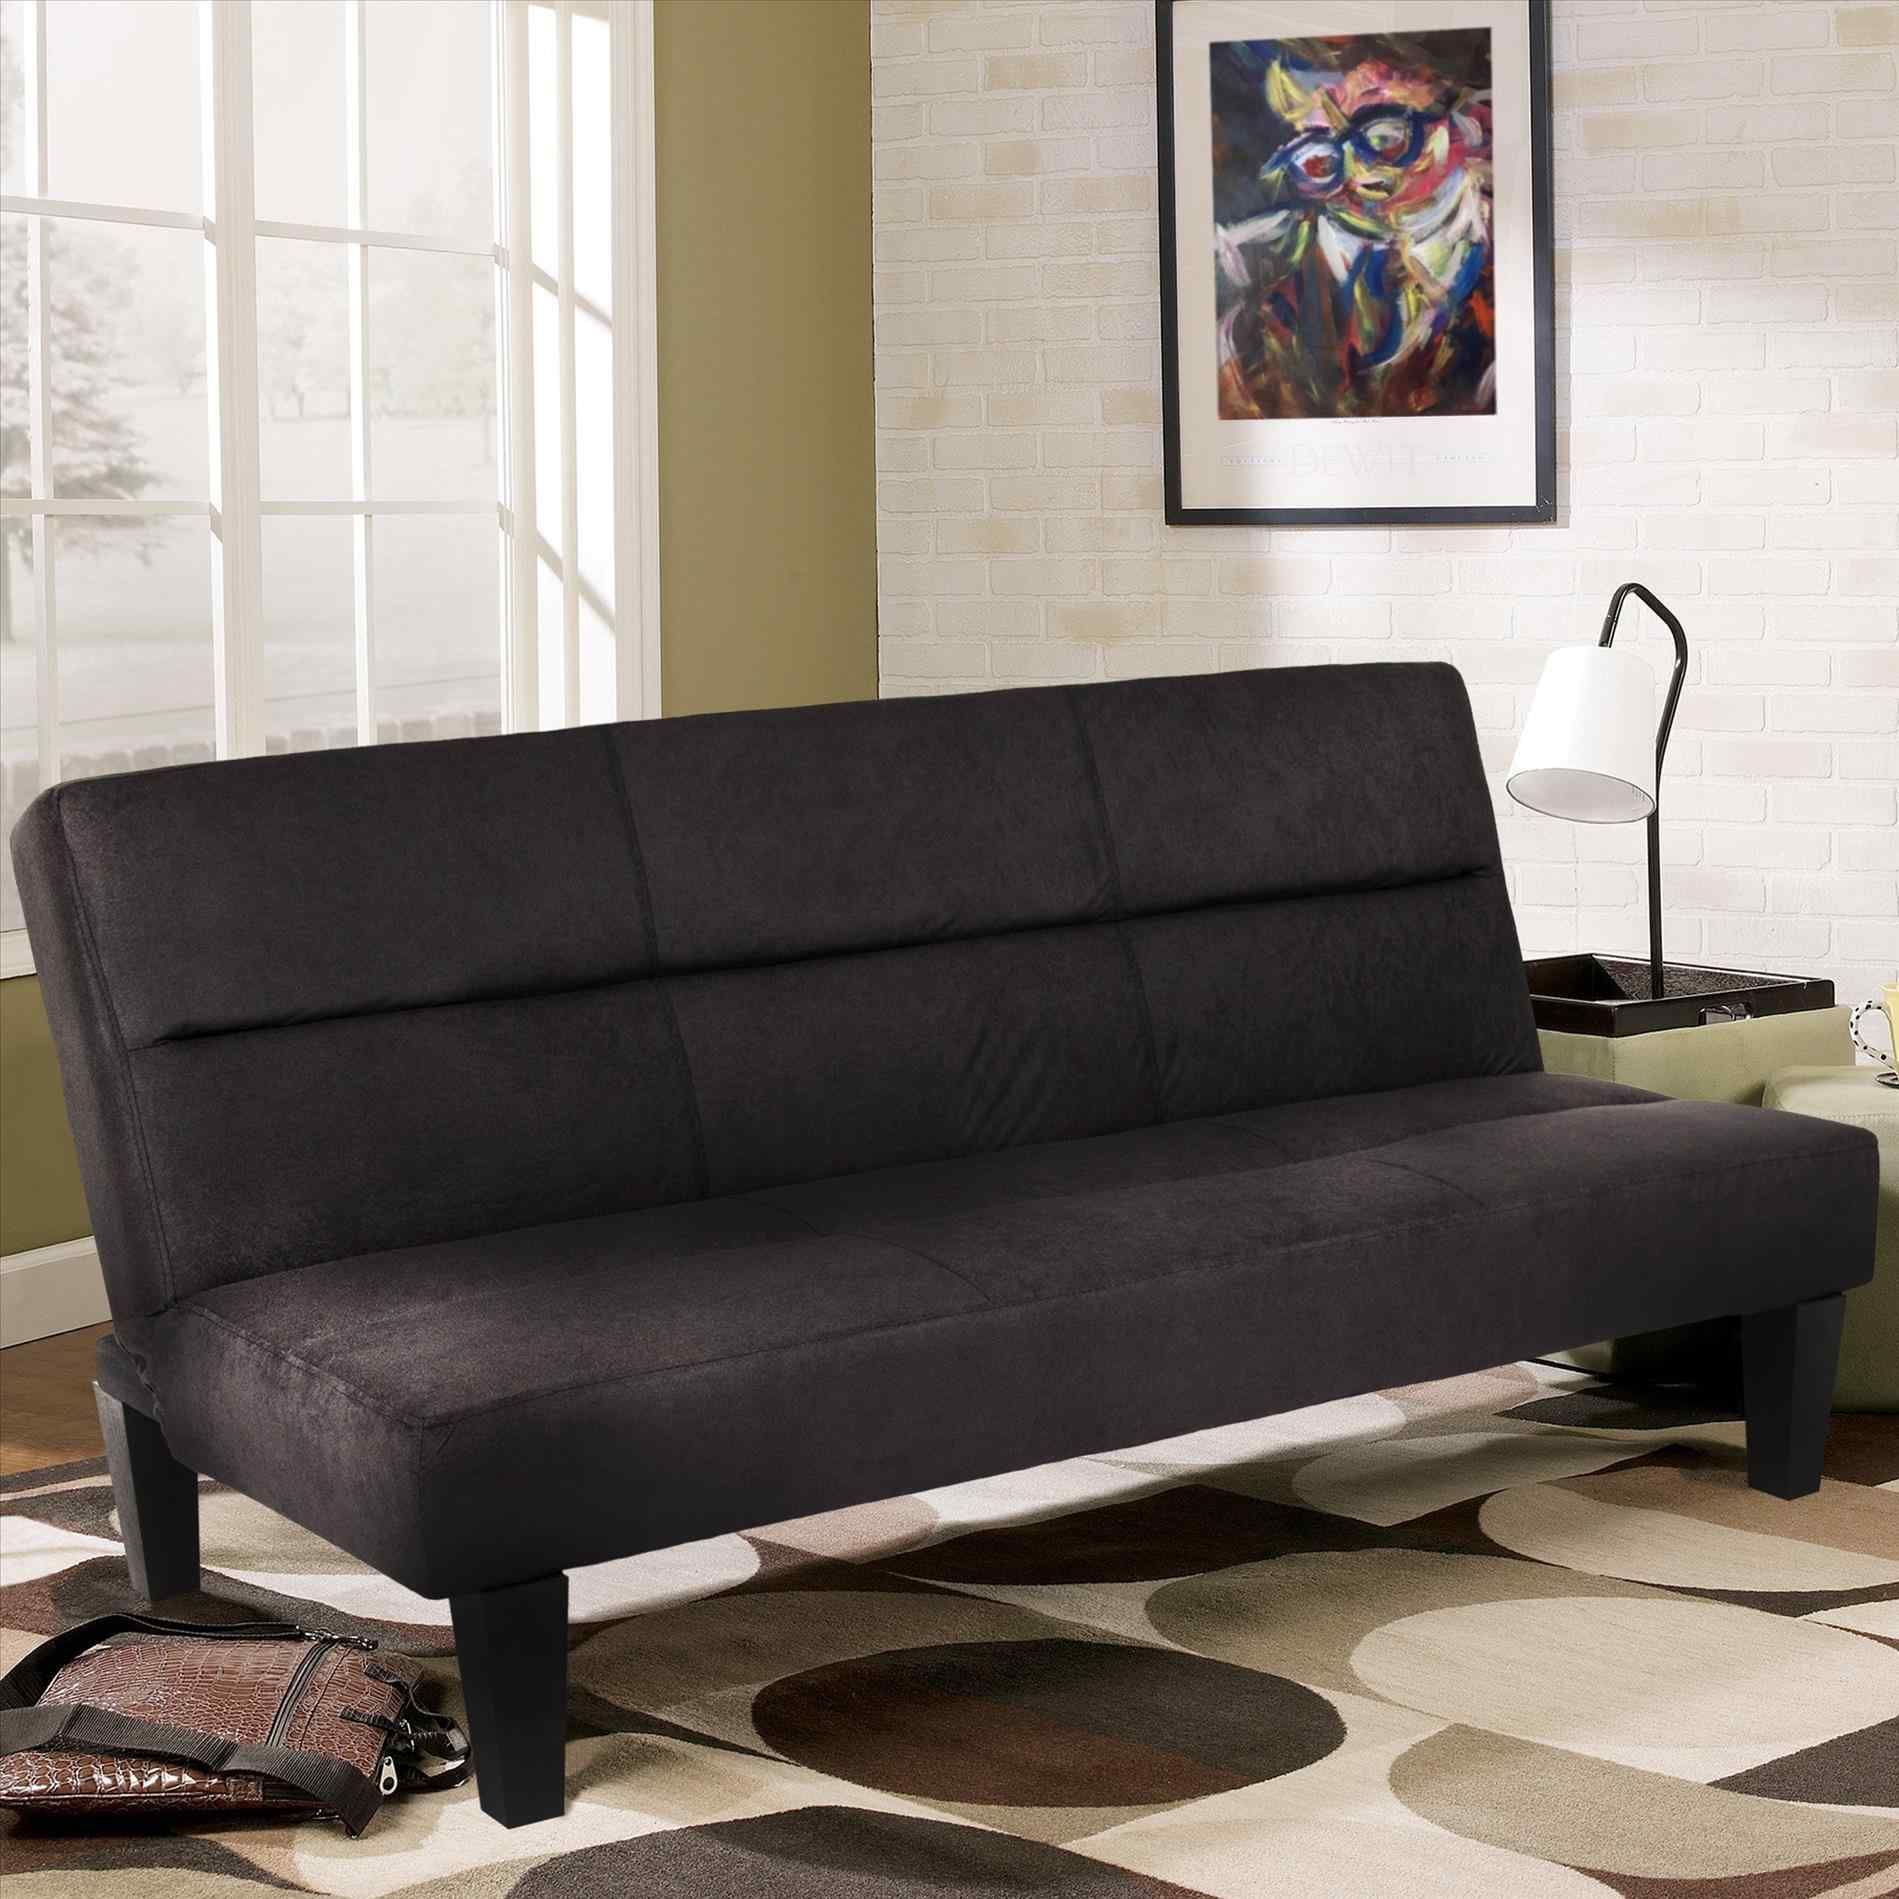 Roselawnlutheran Top Rated Futons Sleeper Sofas Best Book Of Stefanie